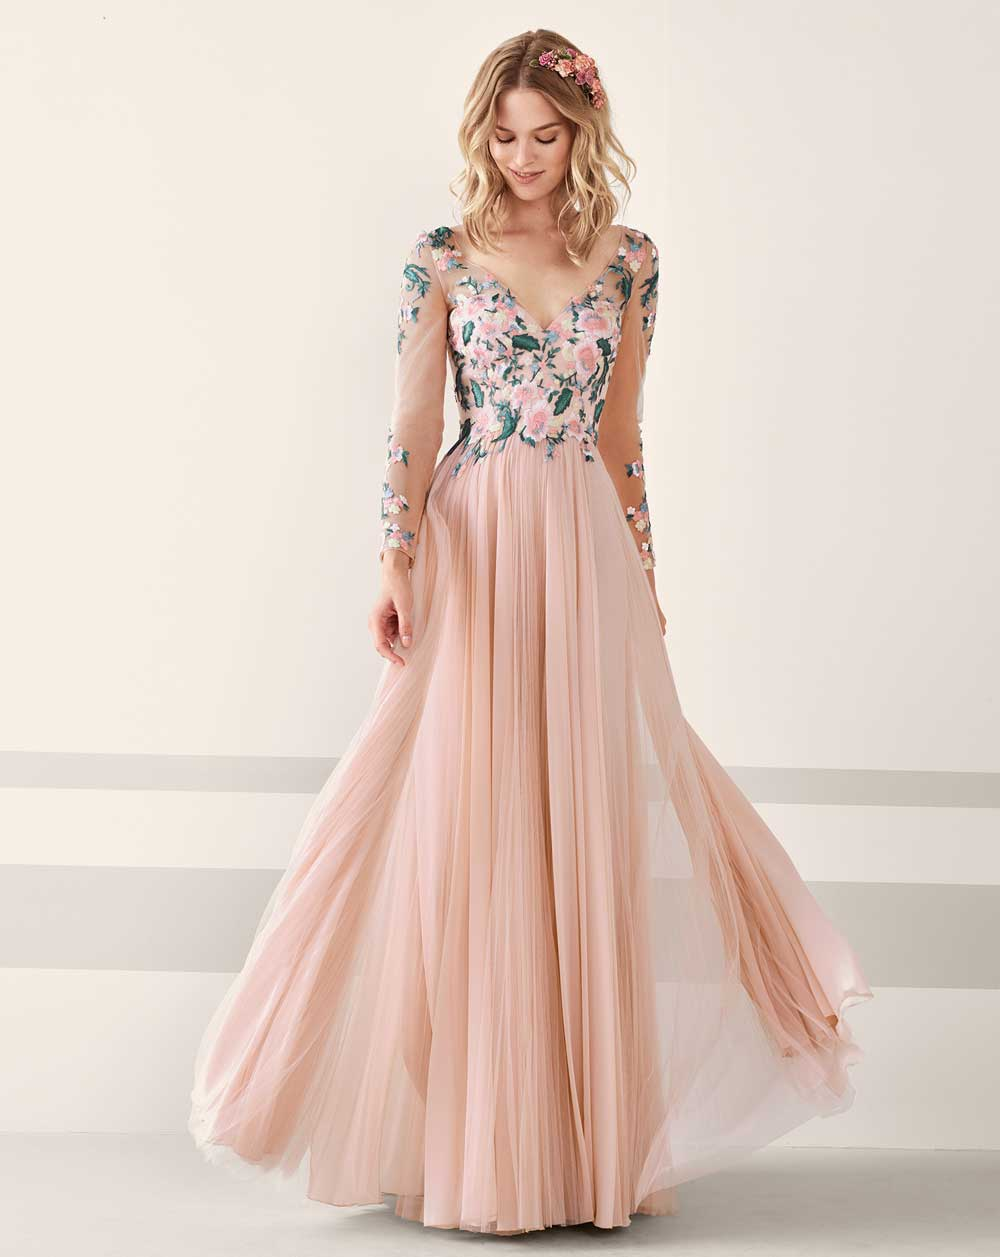 f3a41974ff64 Pronovias 2019 formal wear: Photo catalog and prices - Our best Style